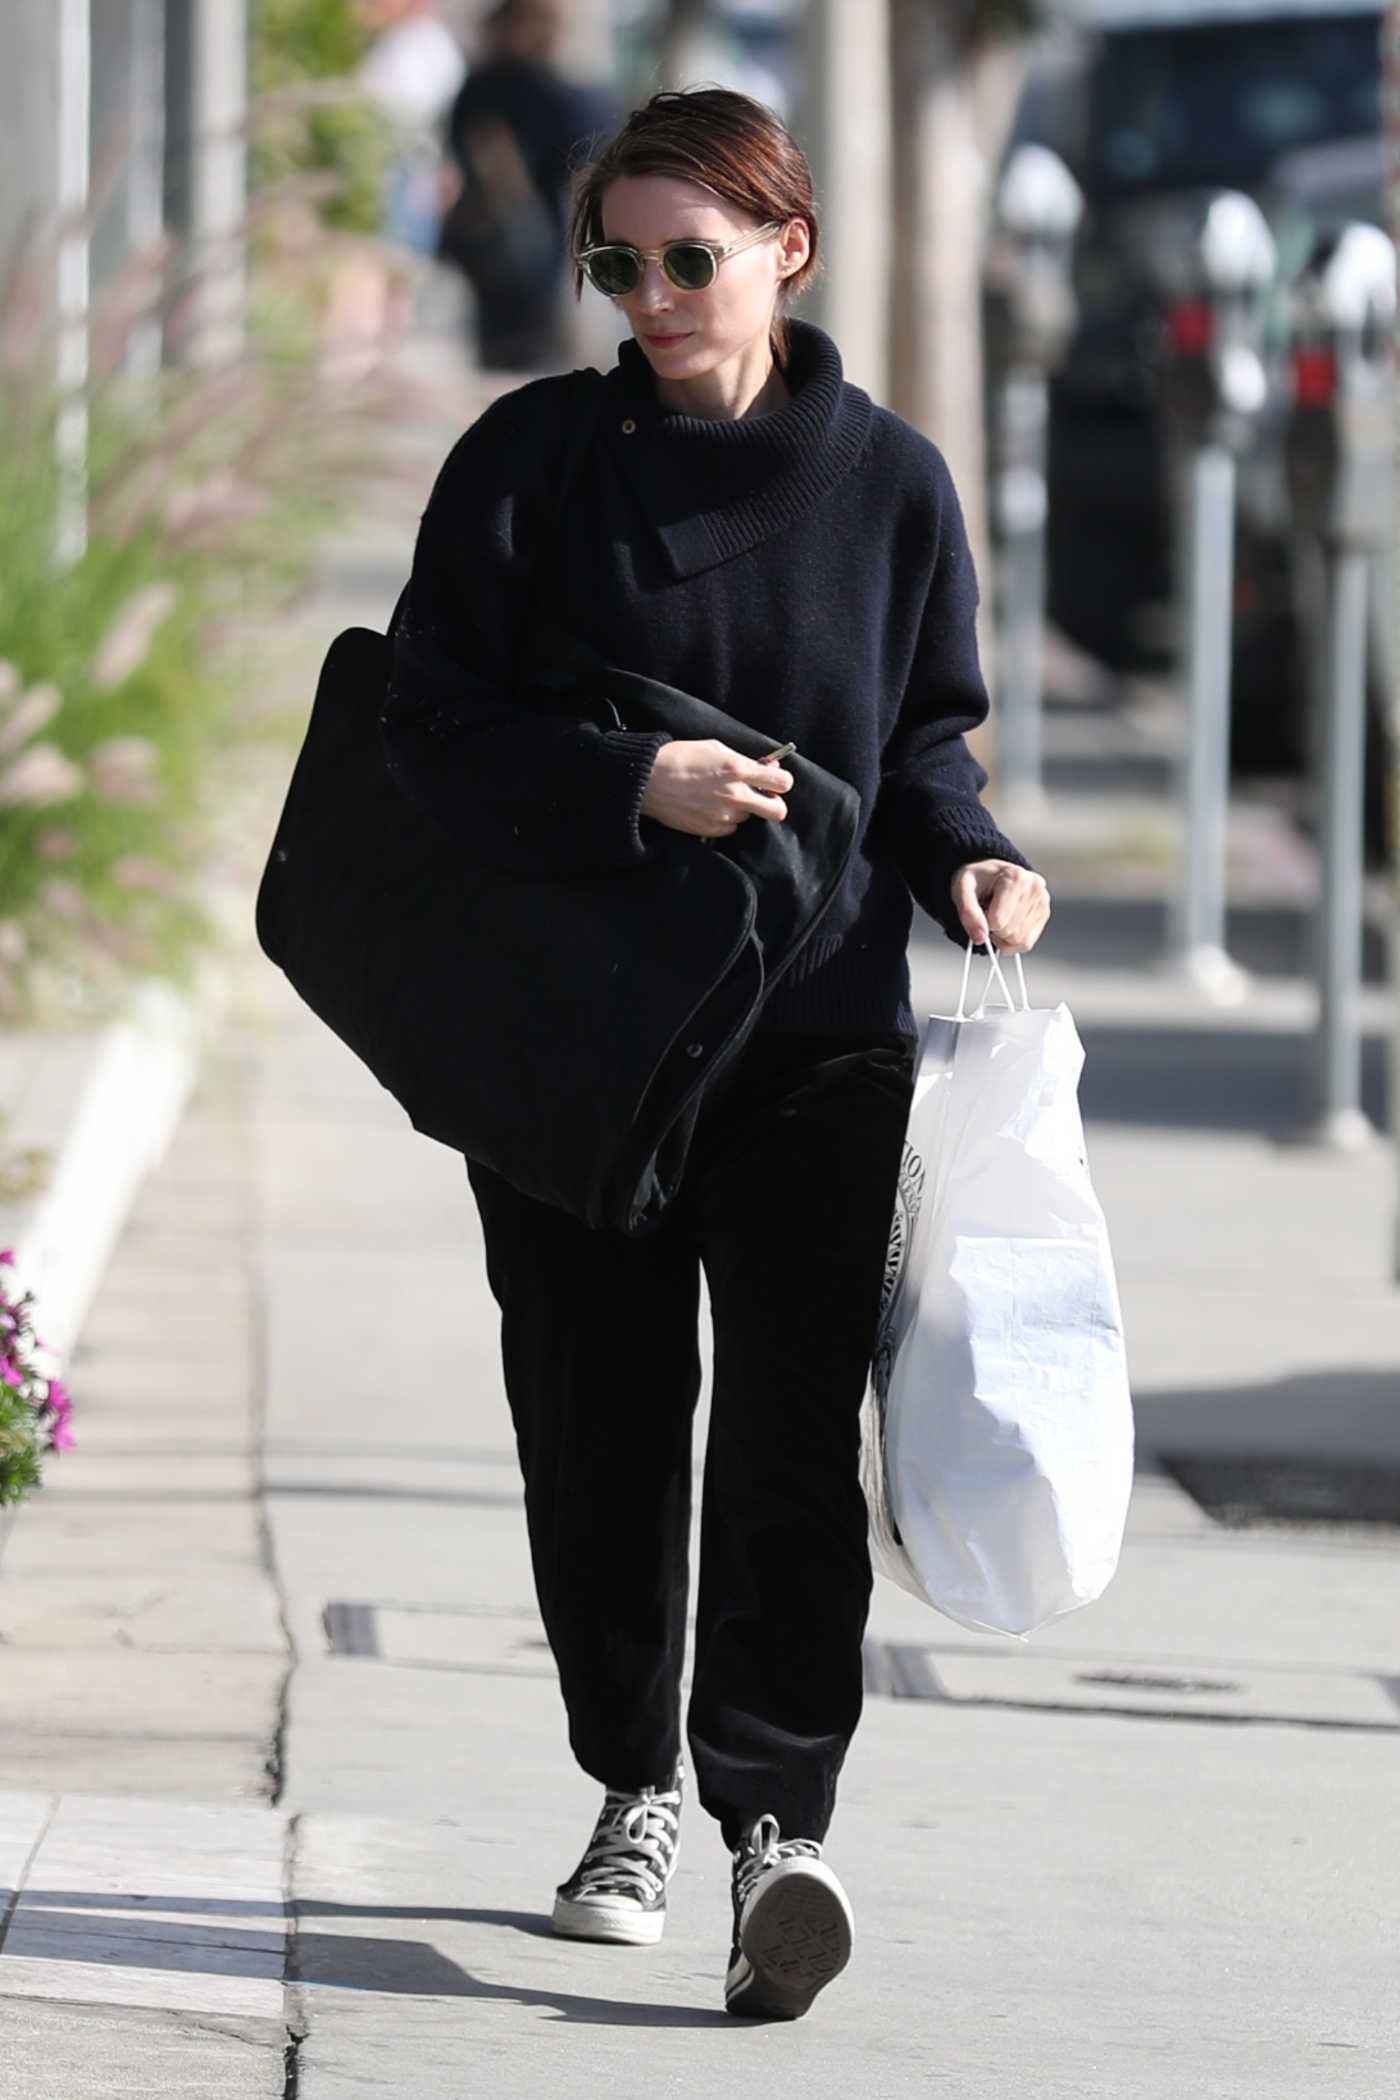 Rooney Mara Goes Shopping on Melrose Ave in West Hollywood 01/02/2018